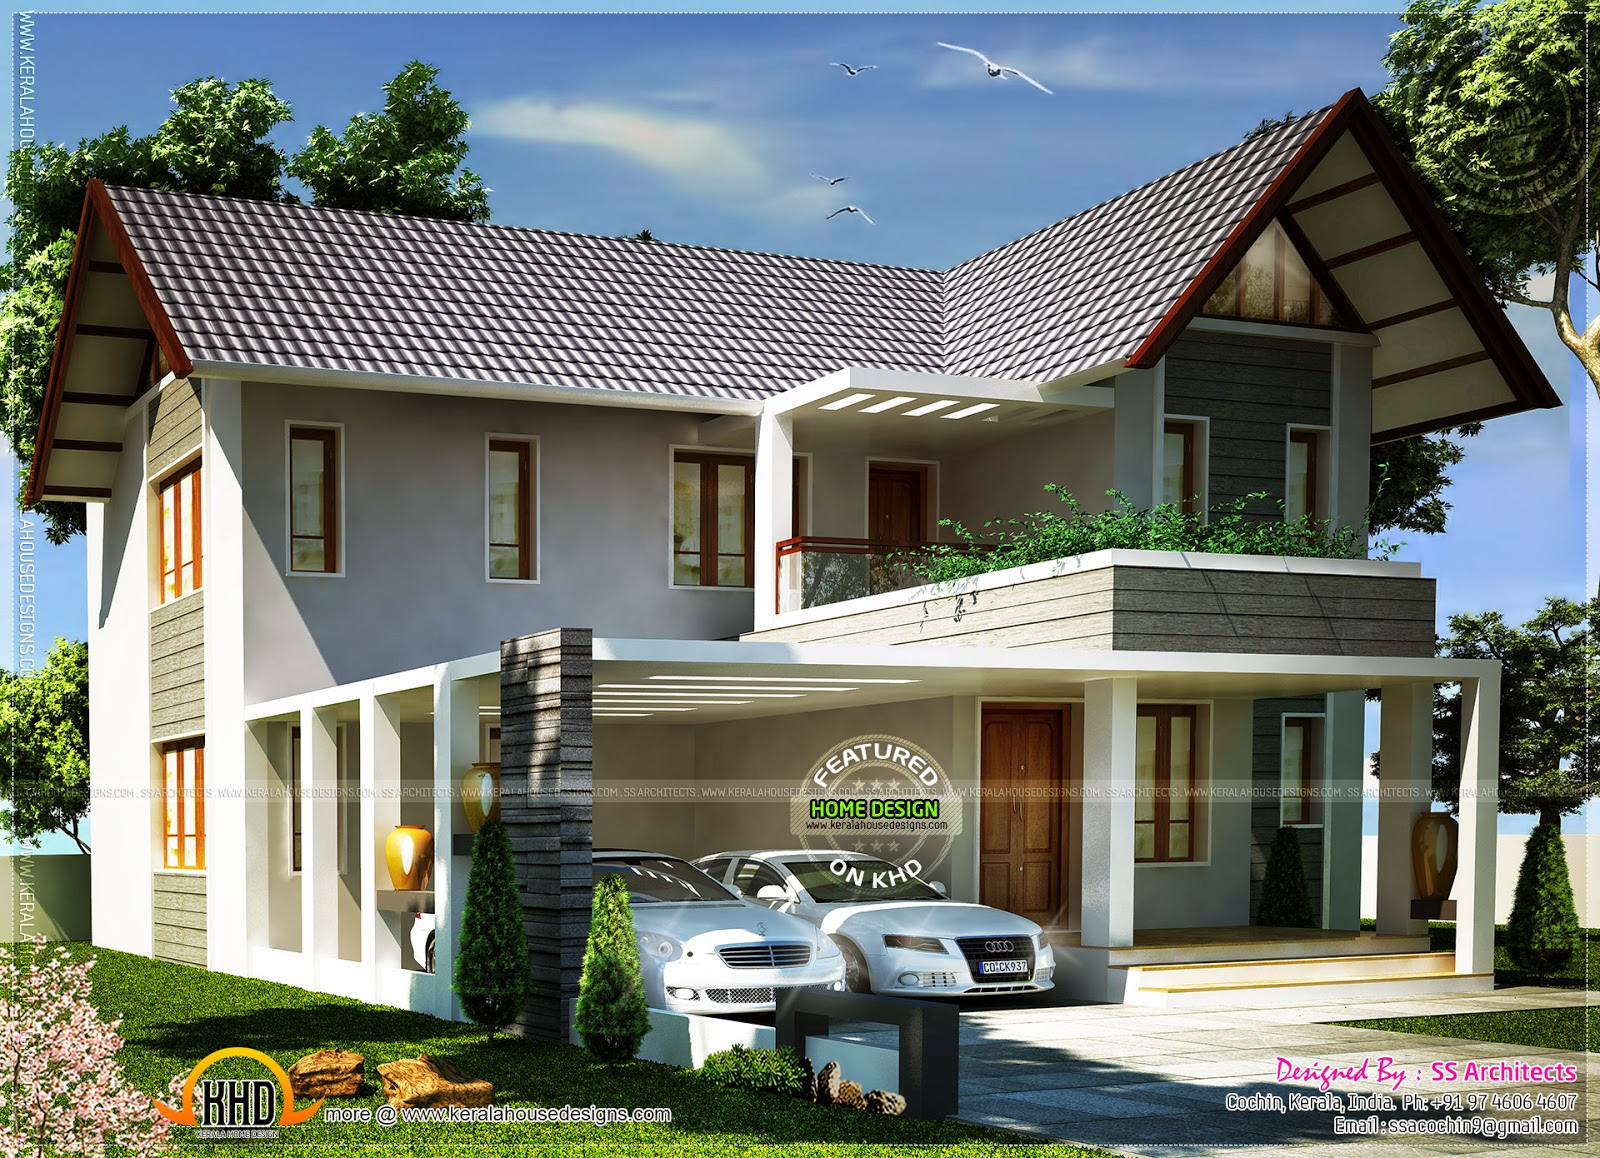 House renovation view before and after keralahousedesigns for European house design